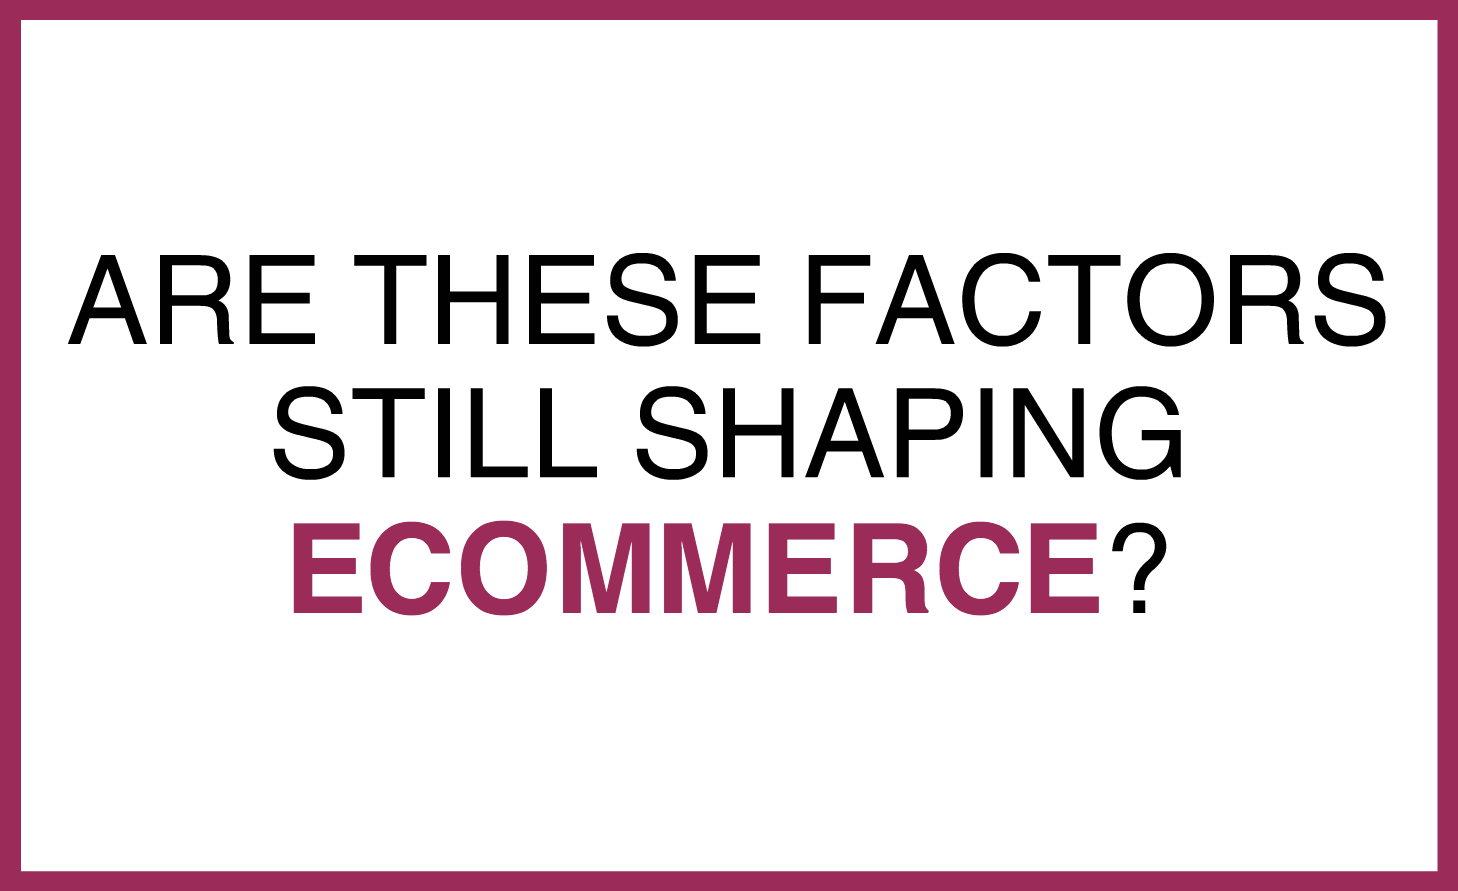 eCommerce_factors-1.png